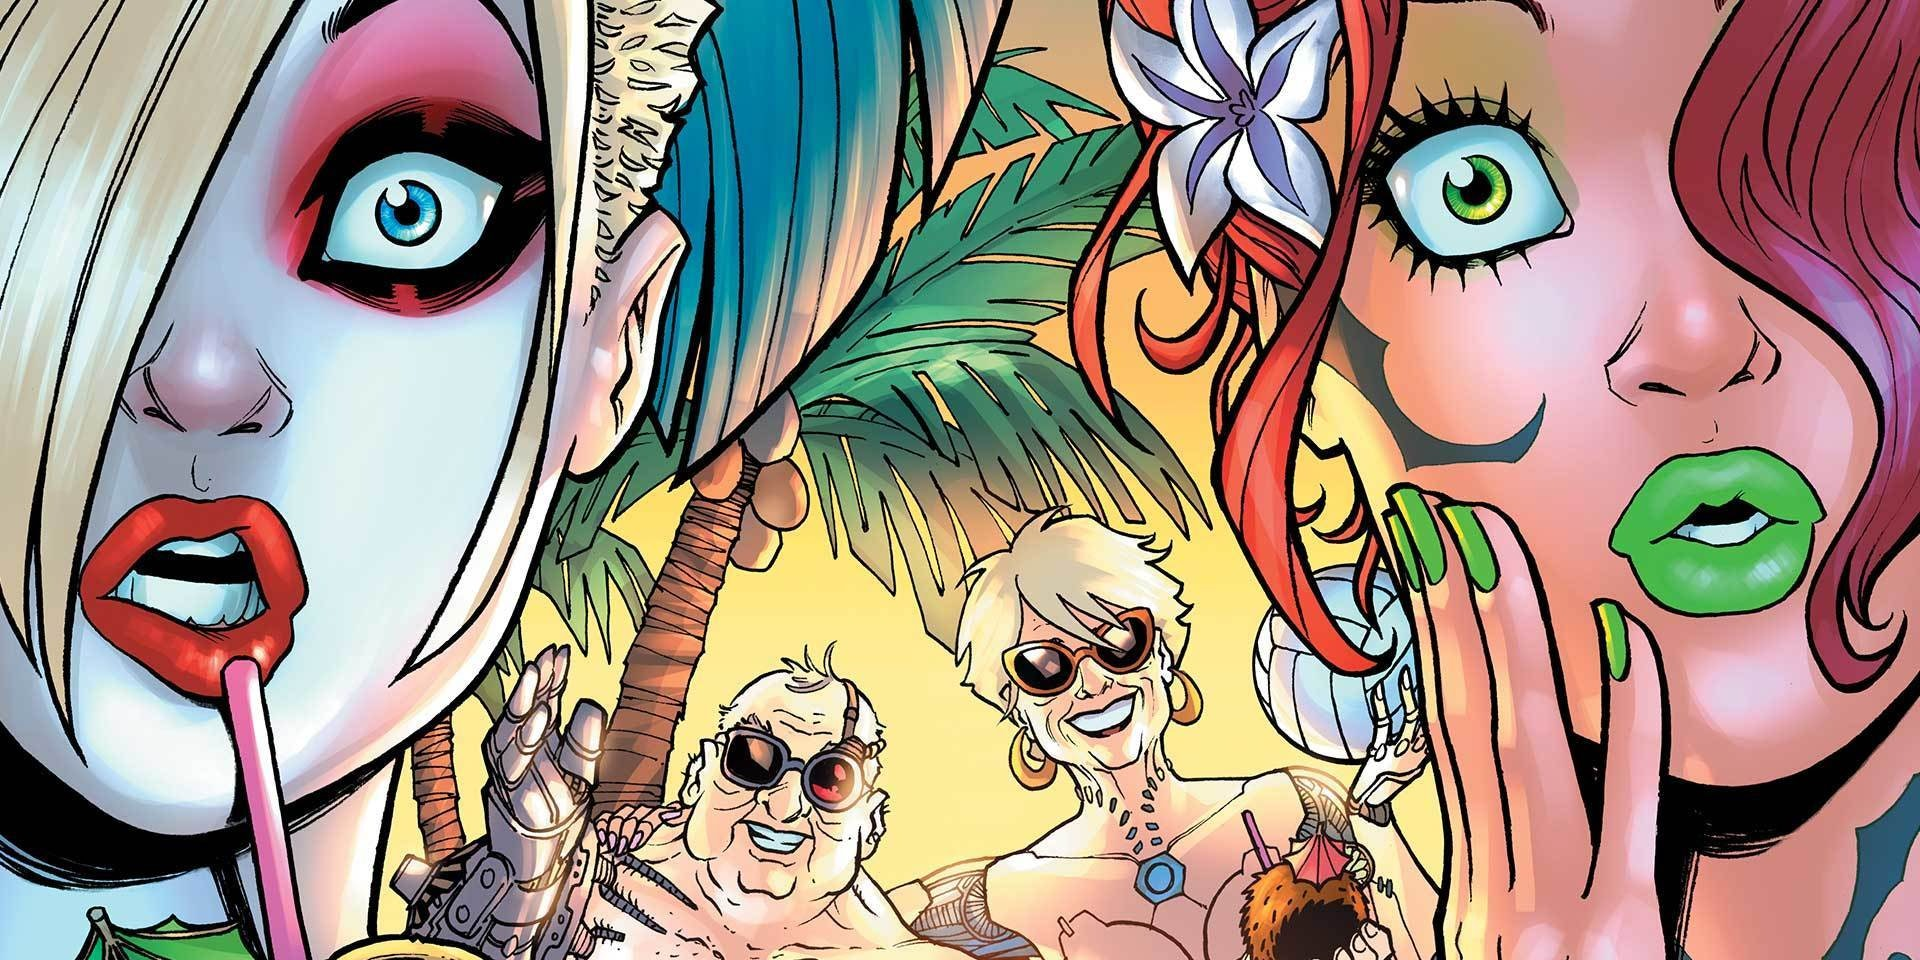 Harley and Poison Ivy visit a nudist colony in the Bahamas.